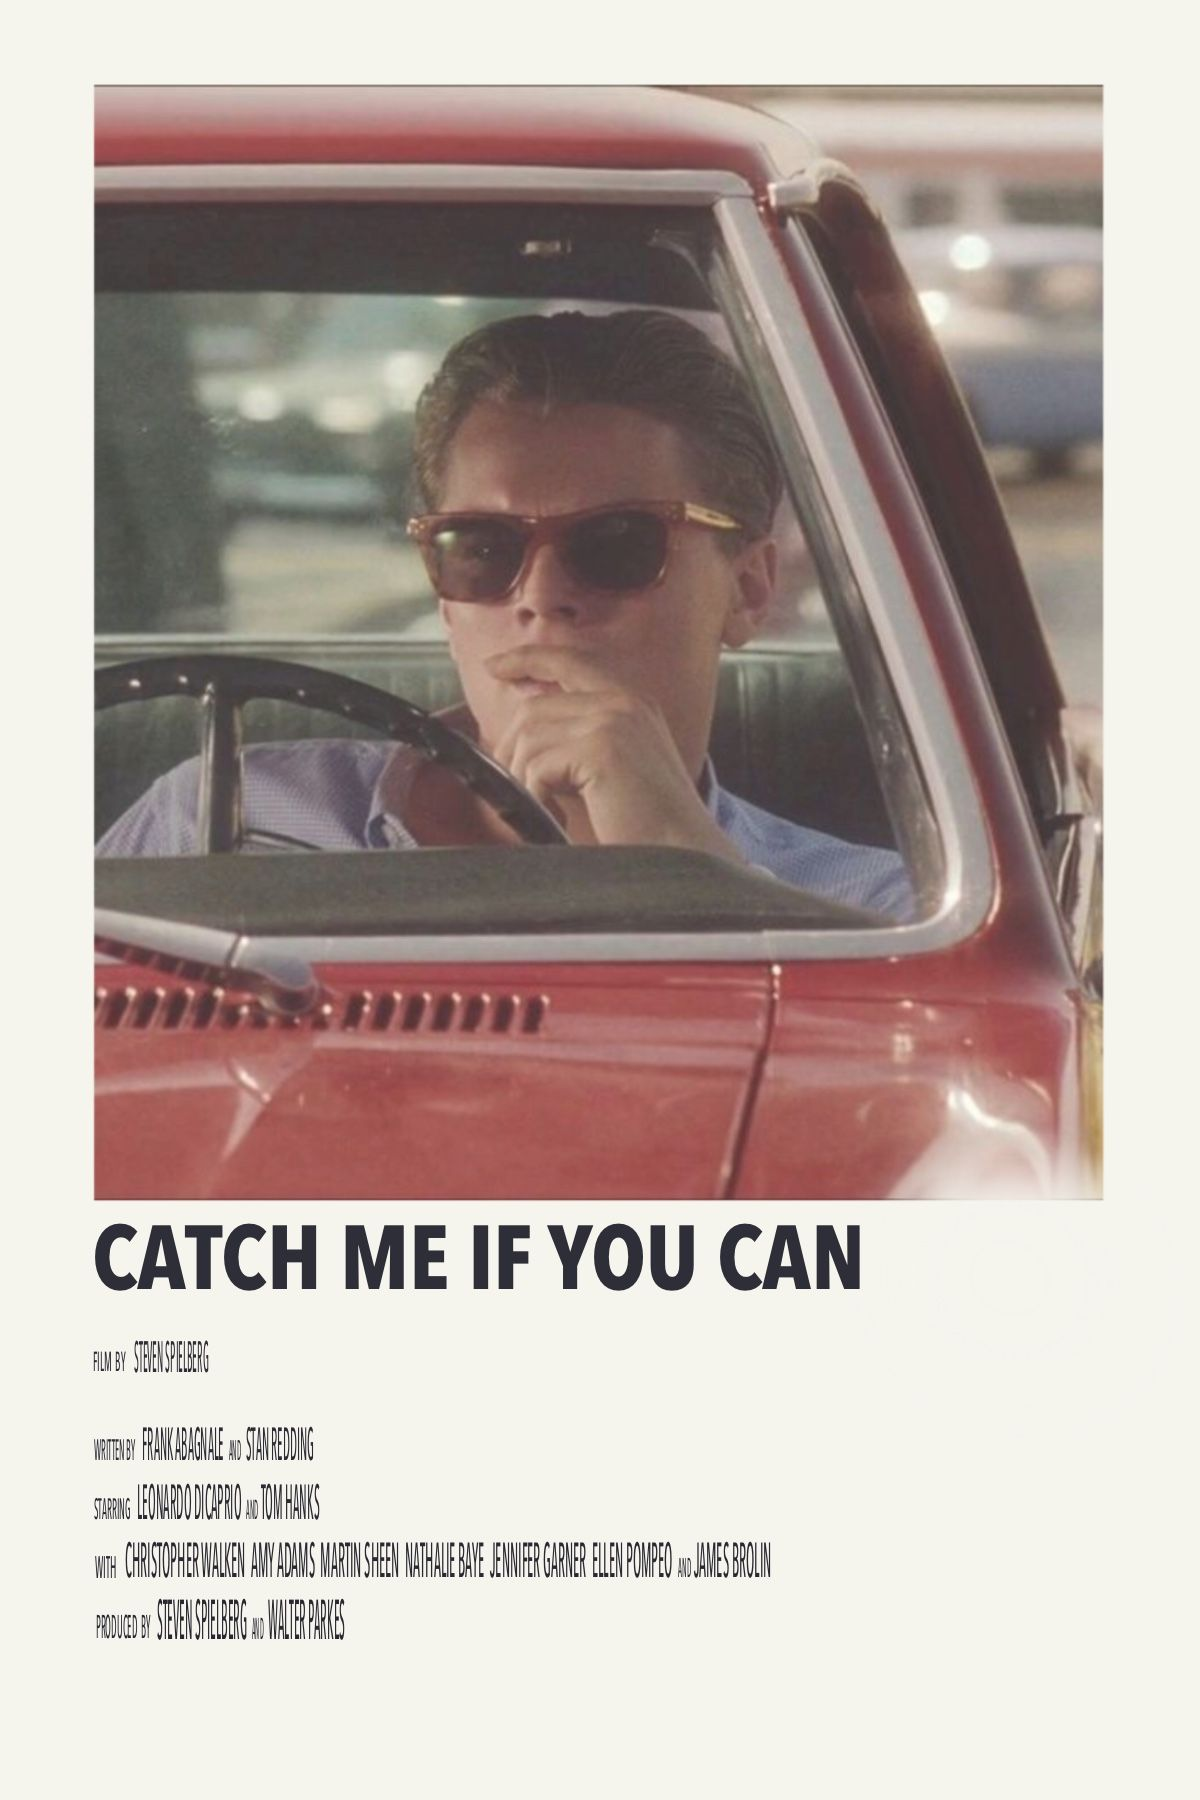 catch me if you can by priya